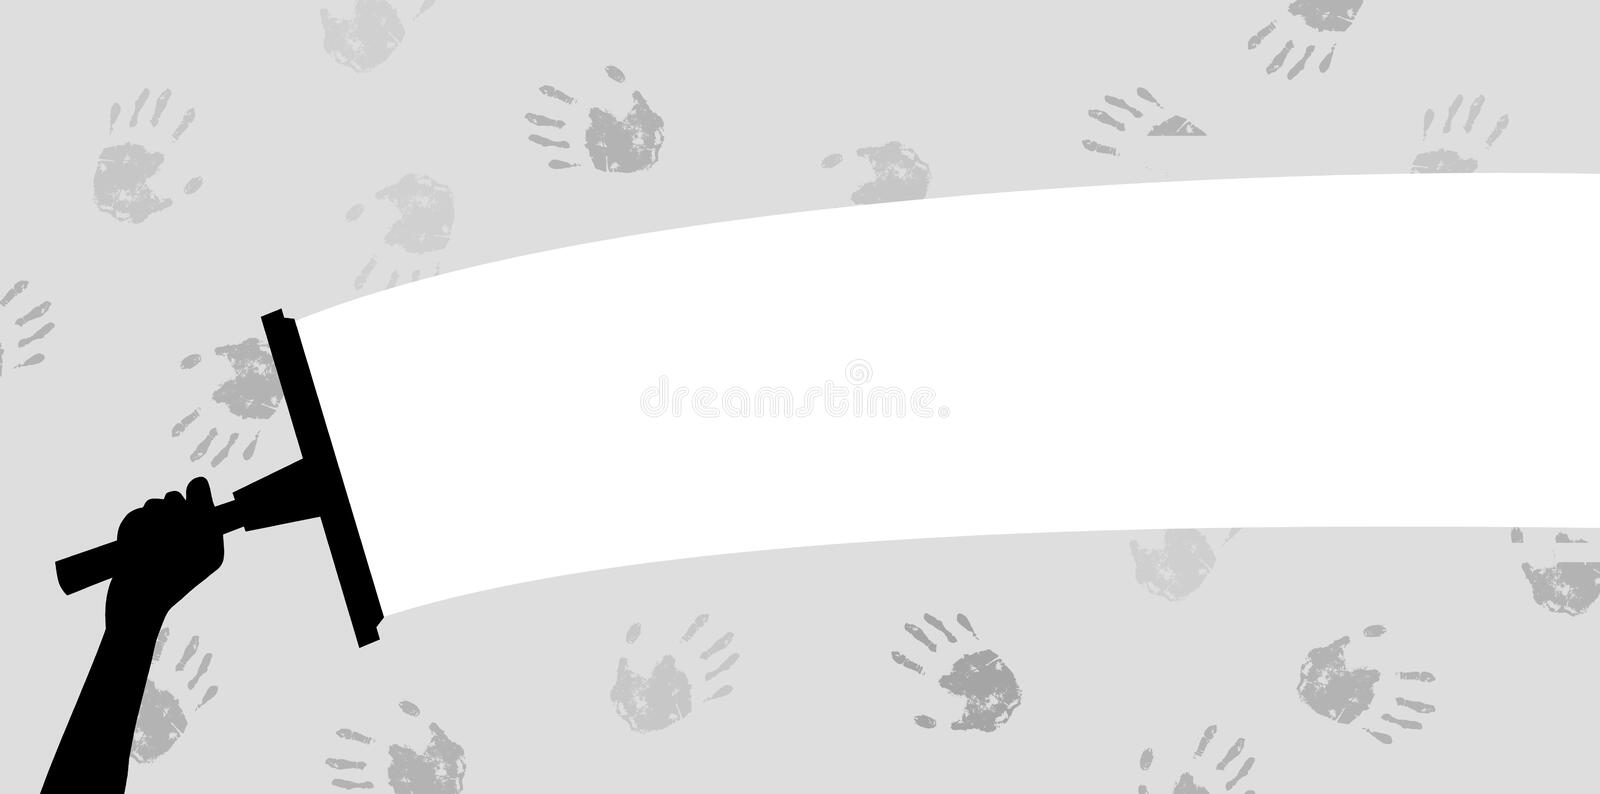 Cleaning off handprints vector illustration